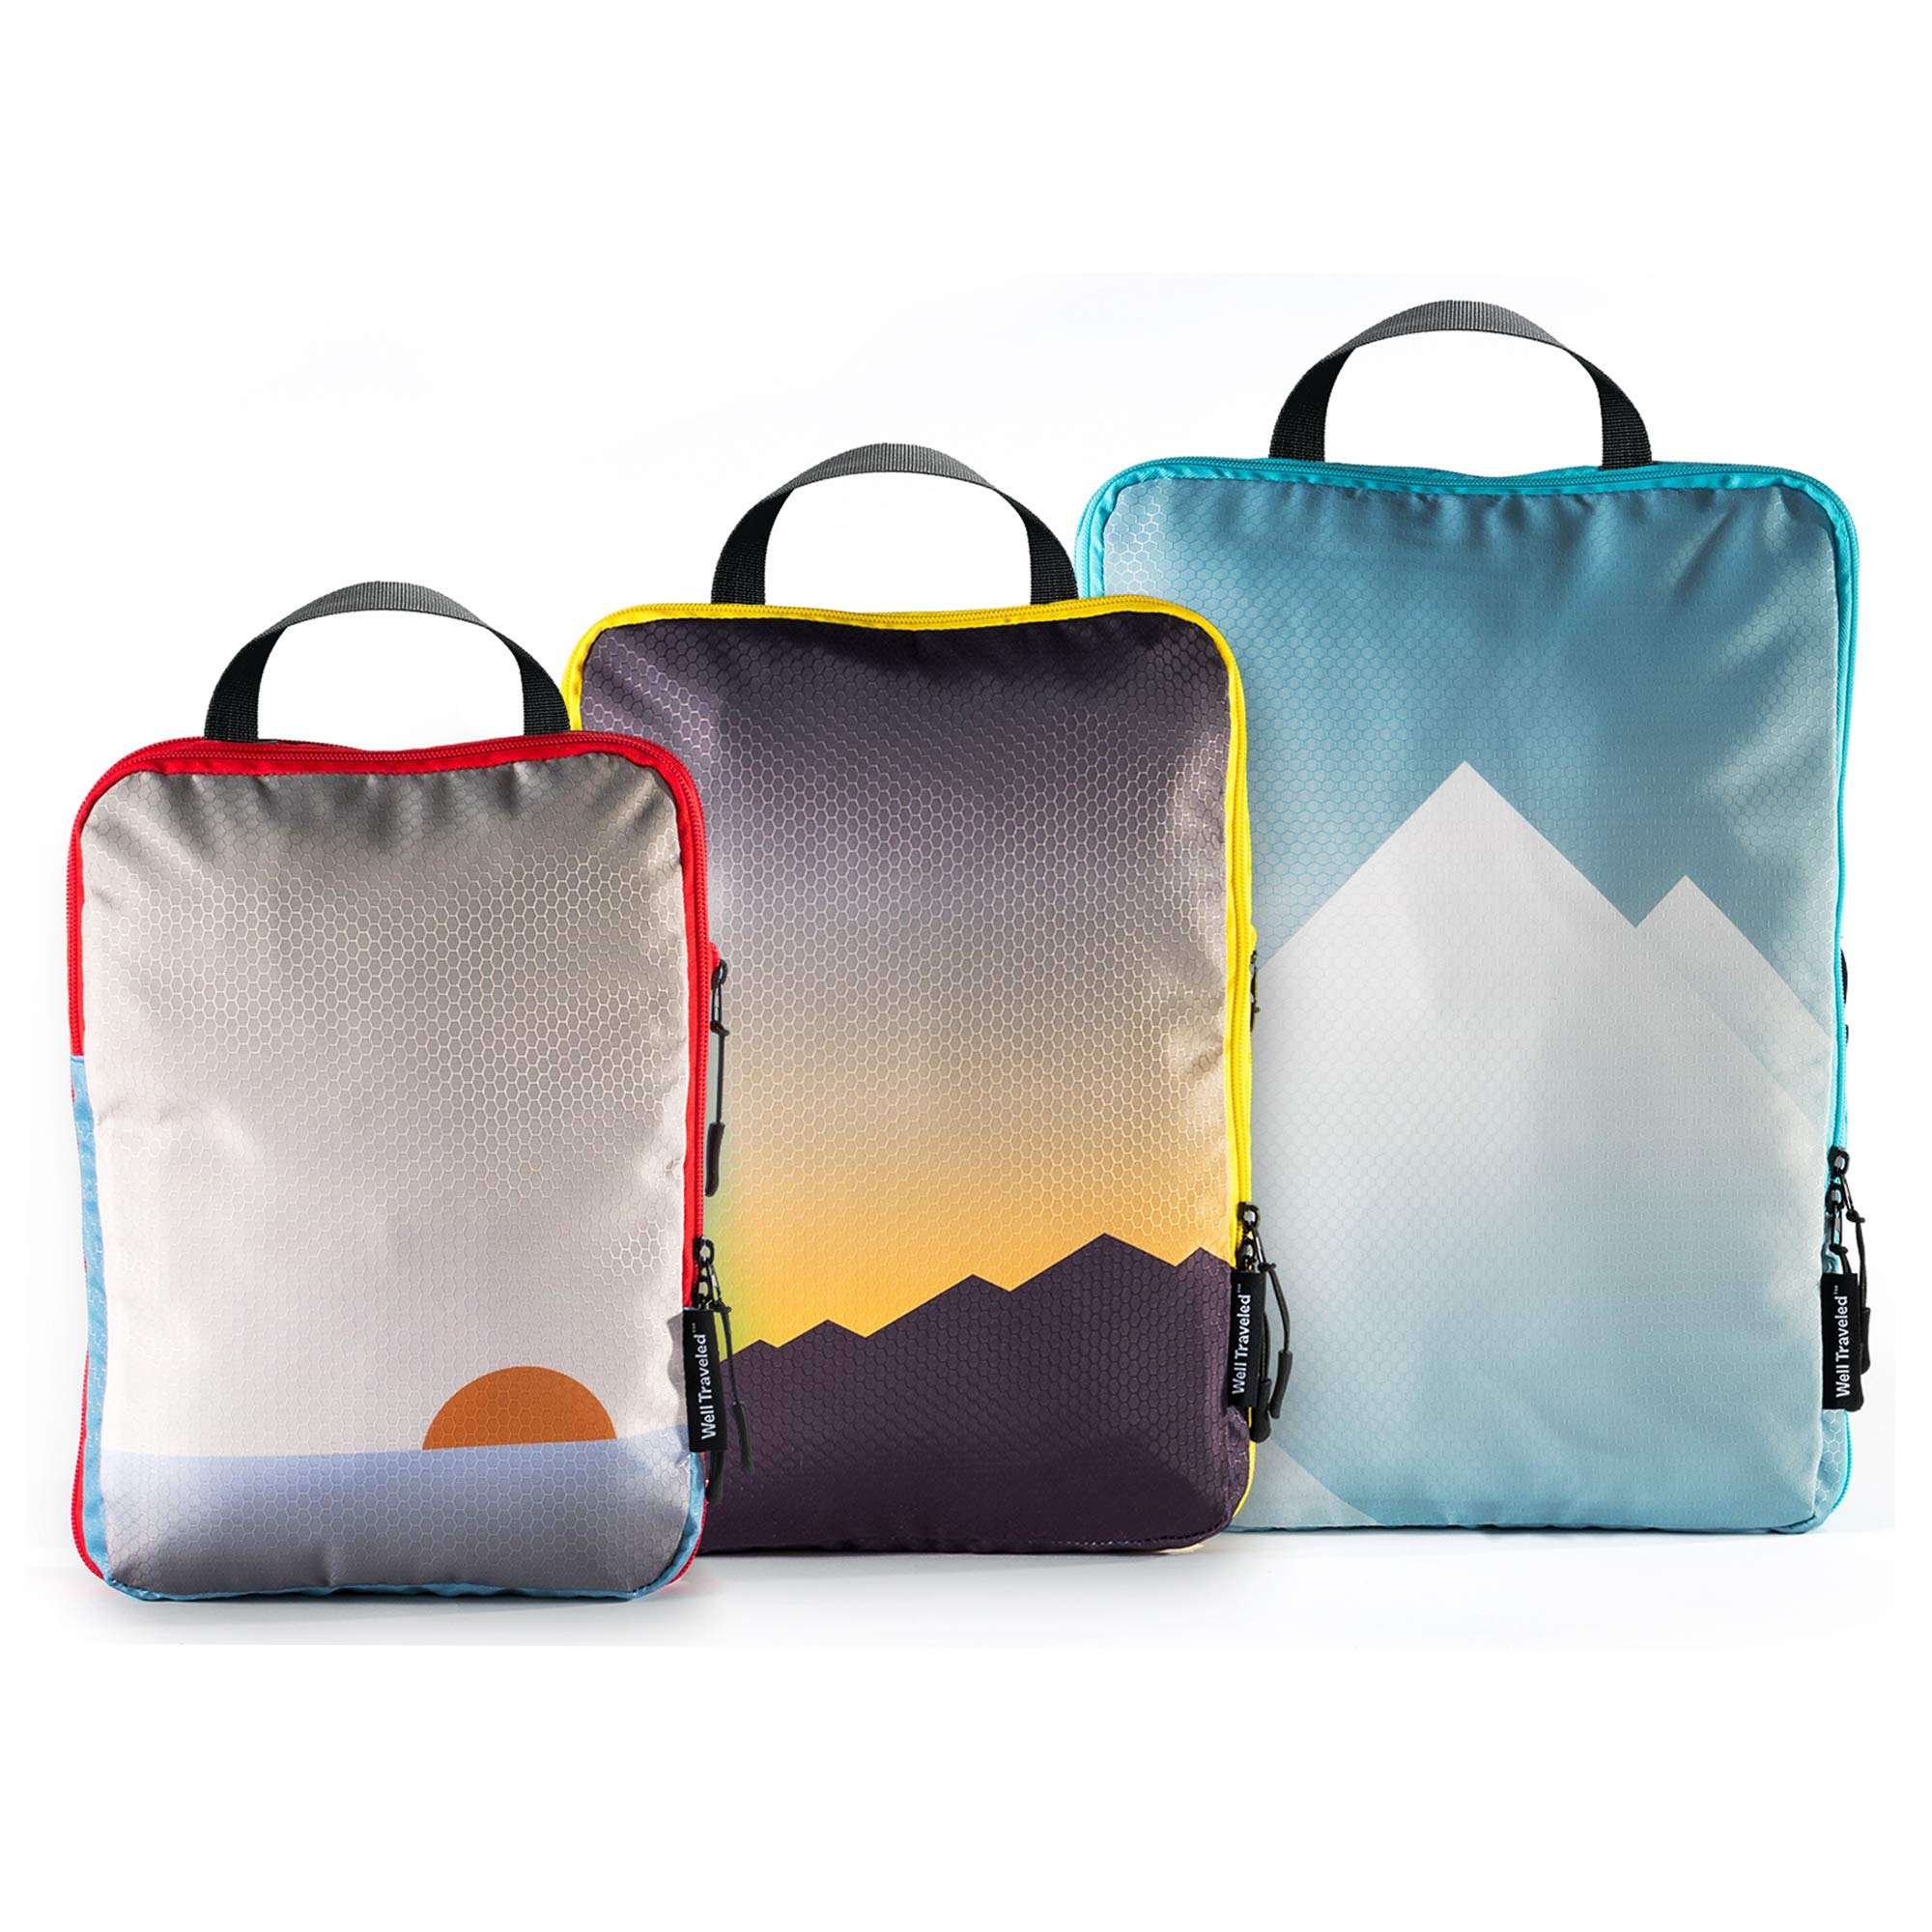 Well Traveled - 3pc Compression Packing Cubes for Travel - Luggage Organizer, Suitcase Organizer & Backpack Organizer with Space Saver Travel Bags for Packing Clothes, Travel Gear & Travel Accessories by Well Traveled